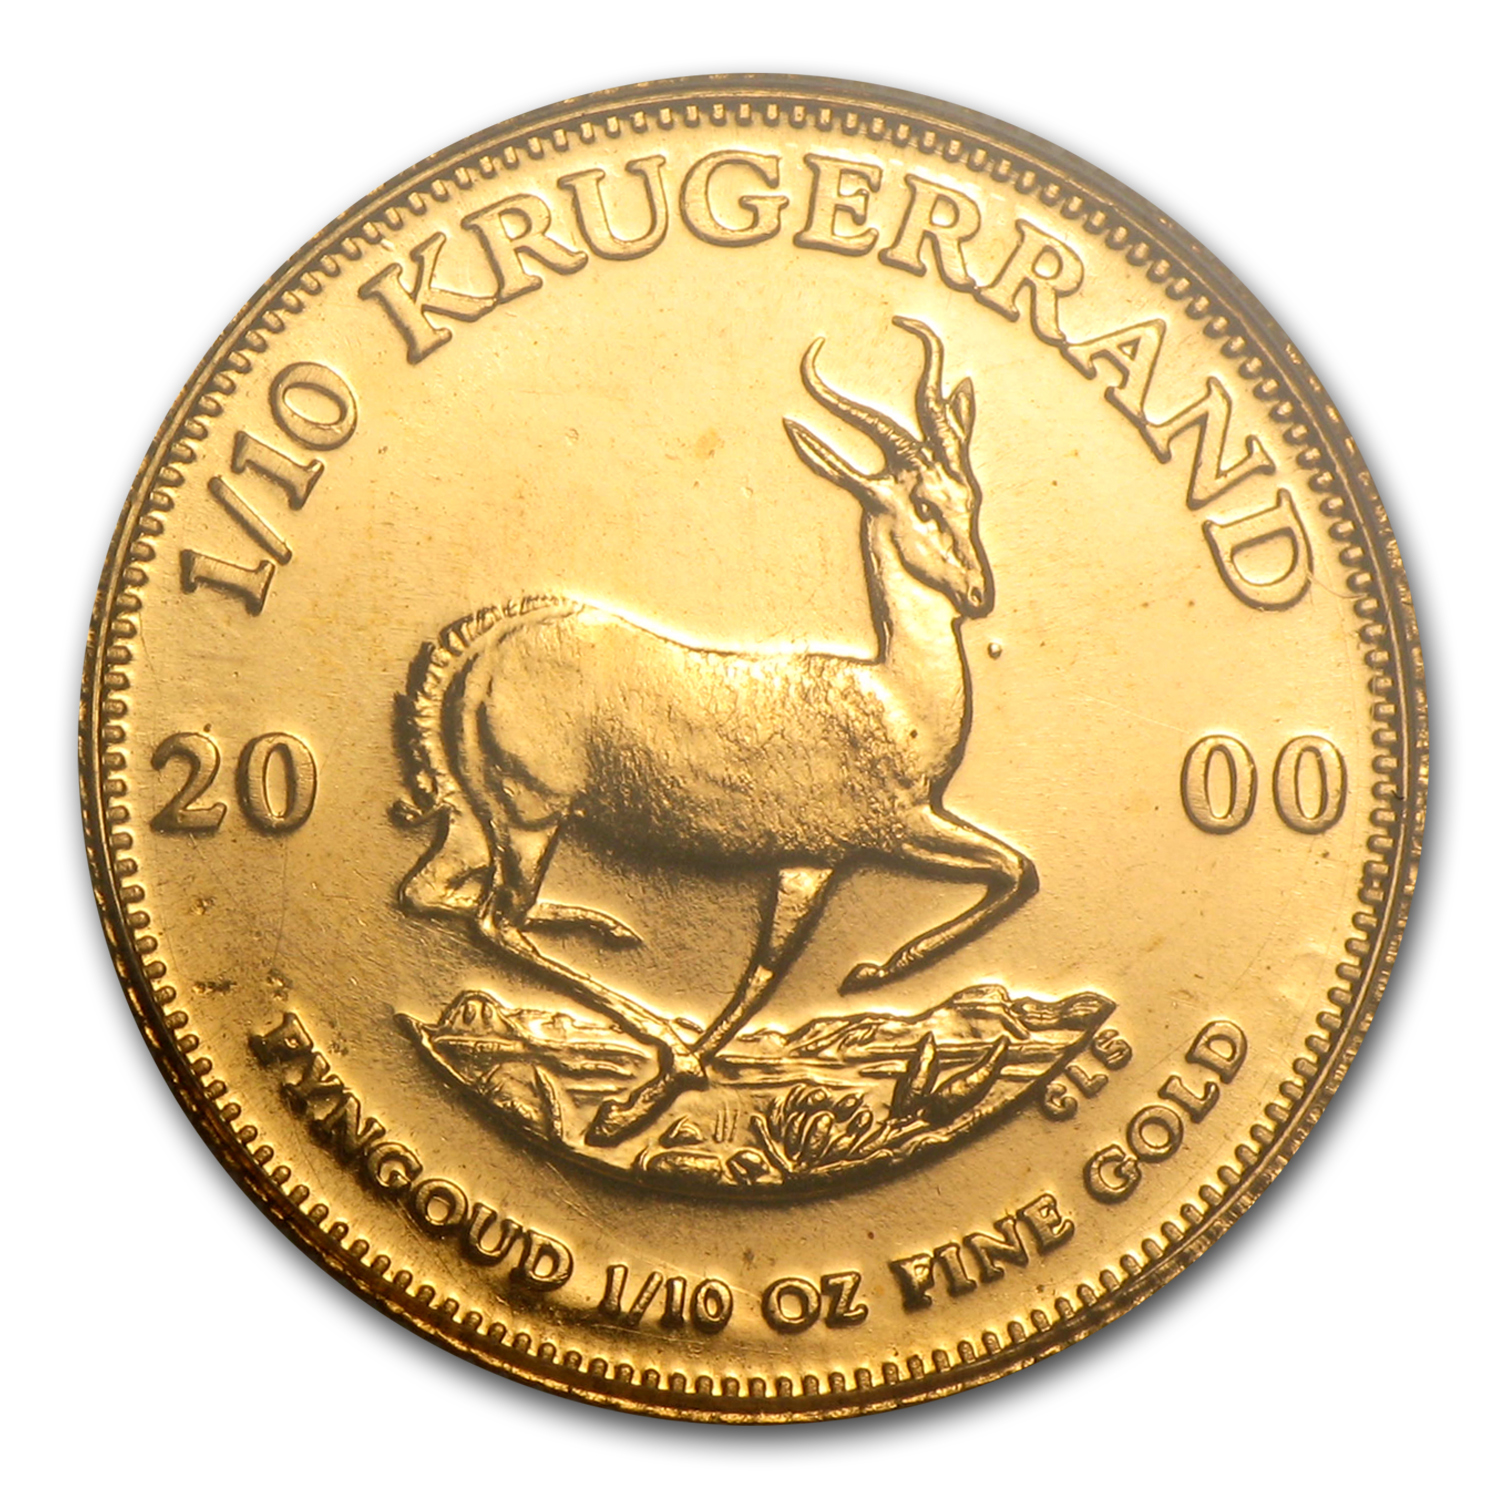 2000 South Africa 1/10 oz Gold Krugerrand Unc PCGS (WTC)